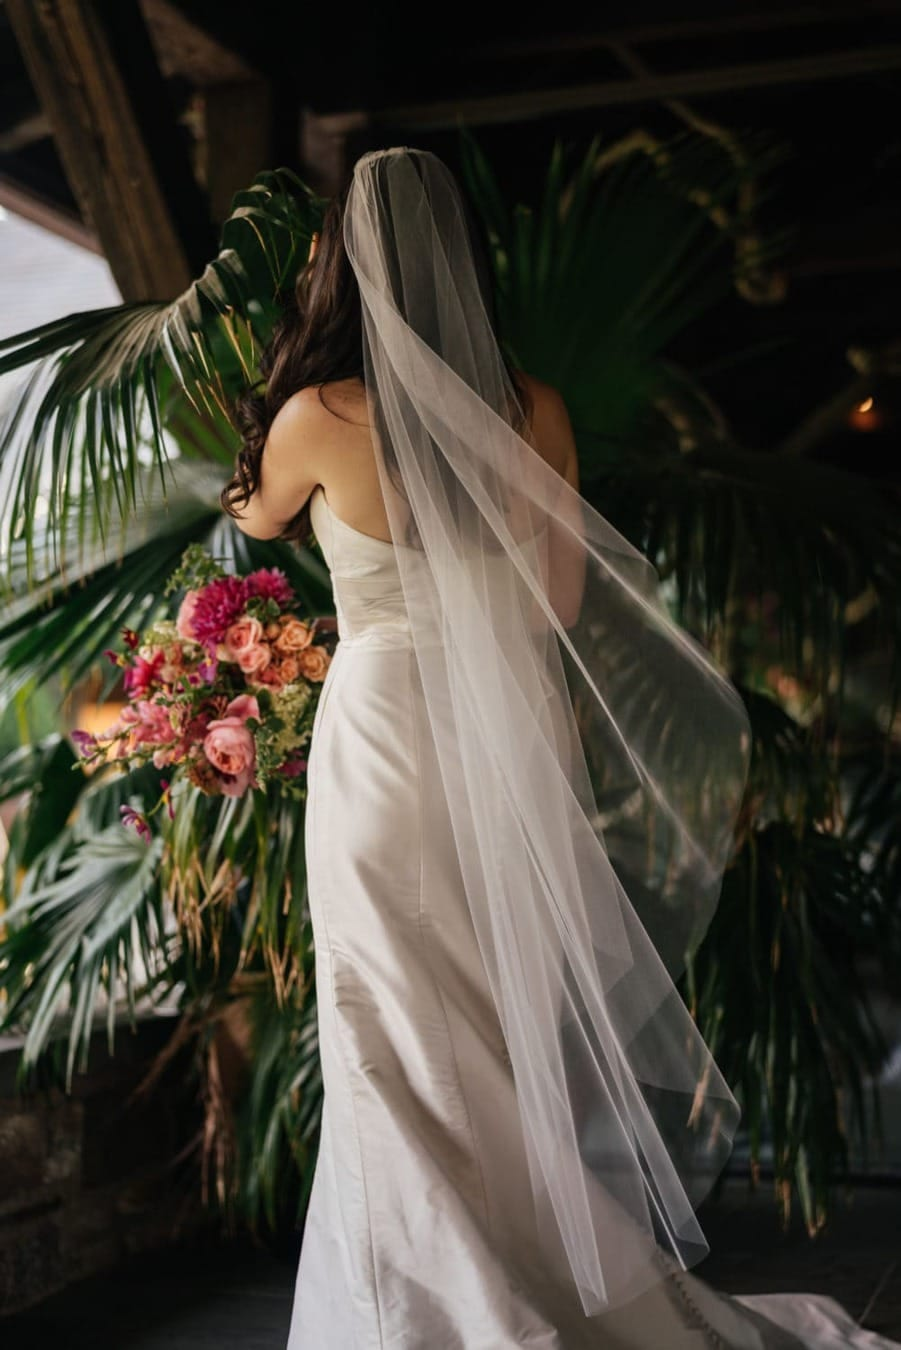 Bride in dress and long dress turns back to camera while standing in palm plant.